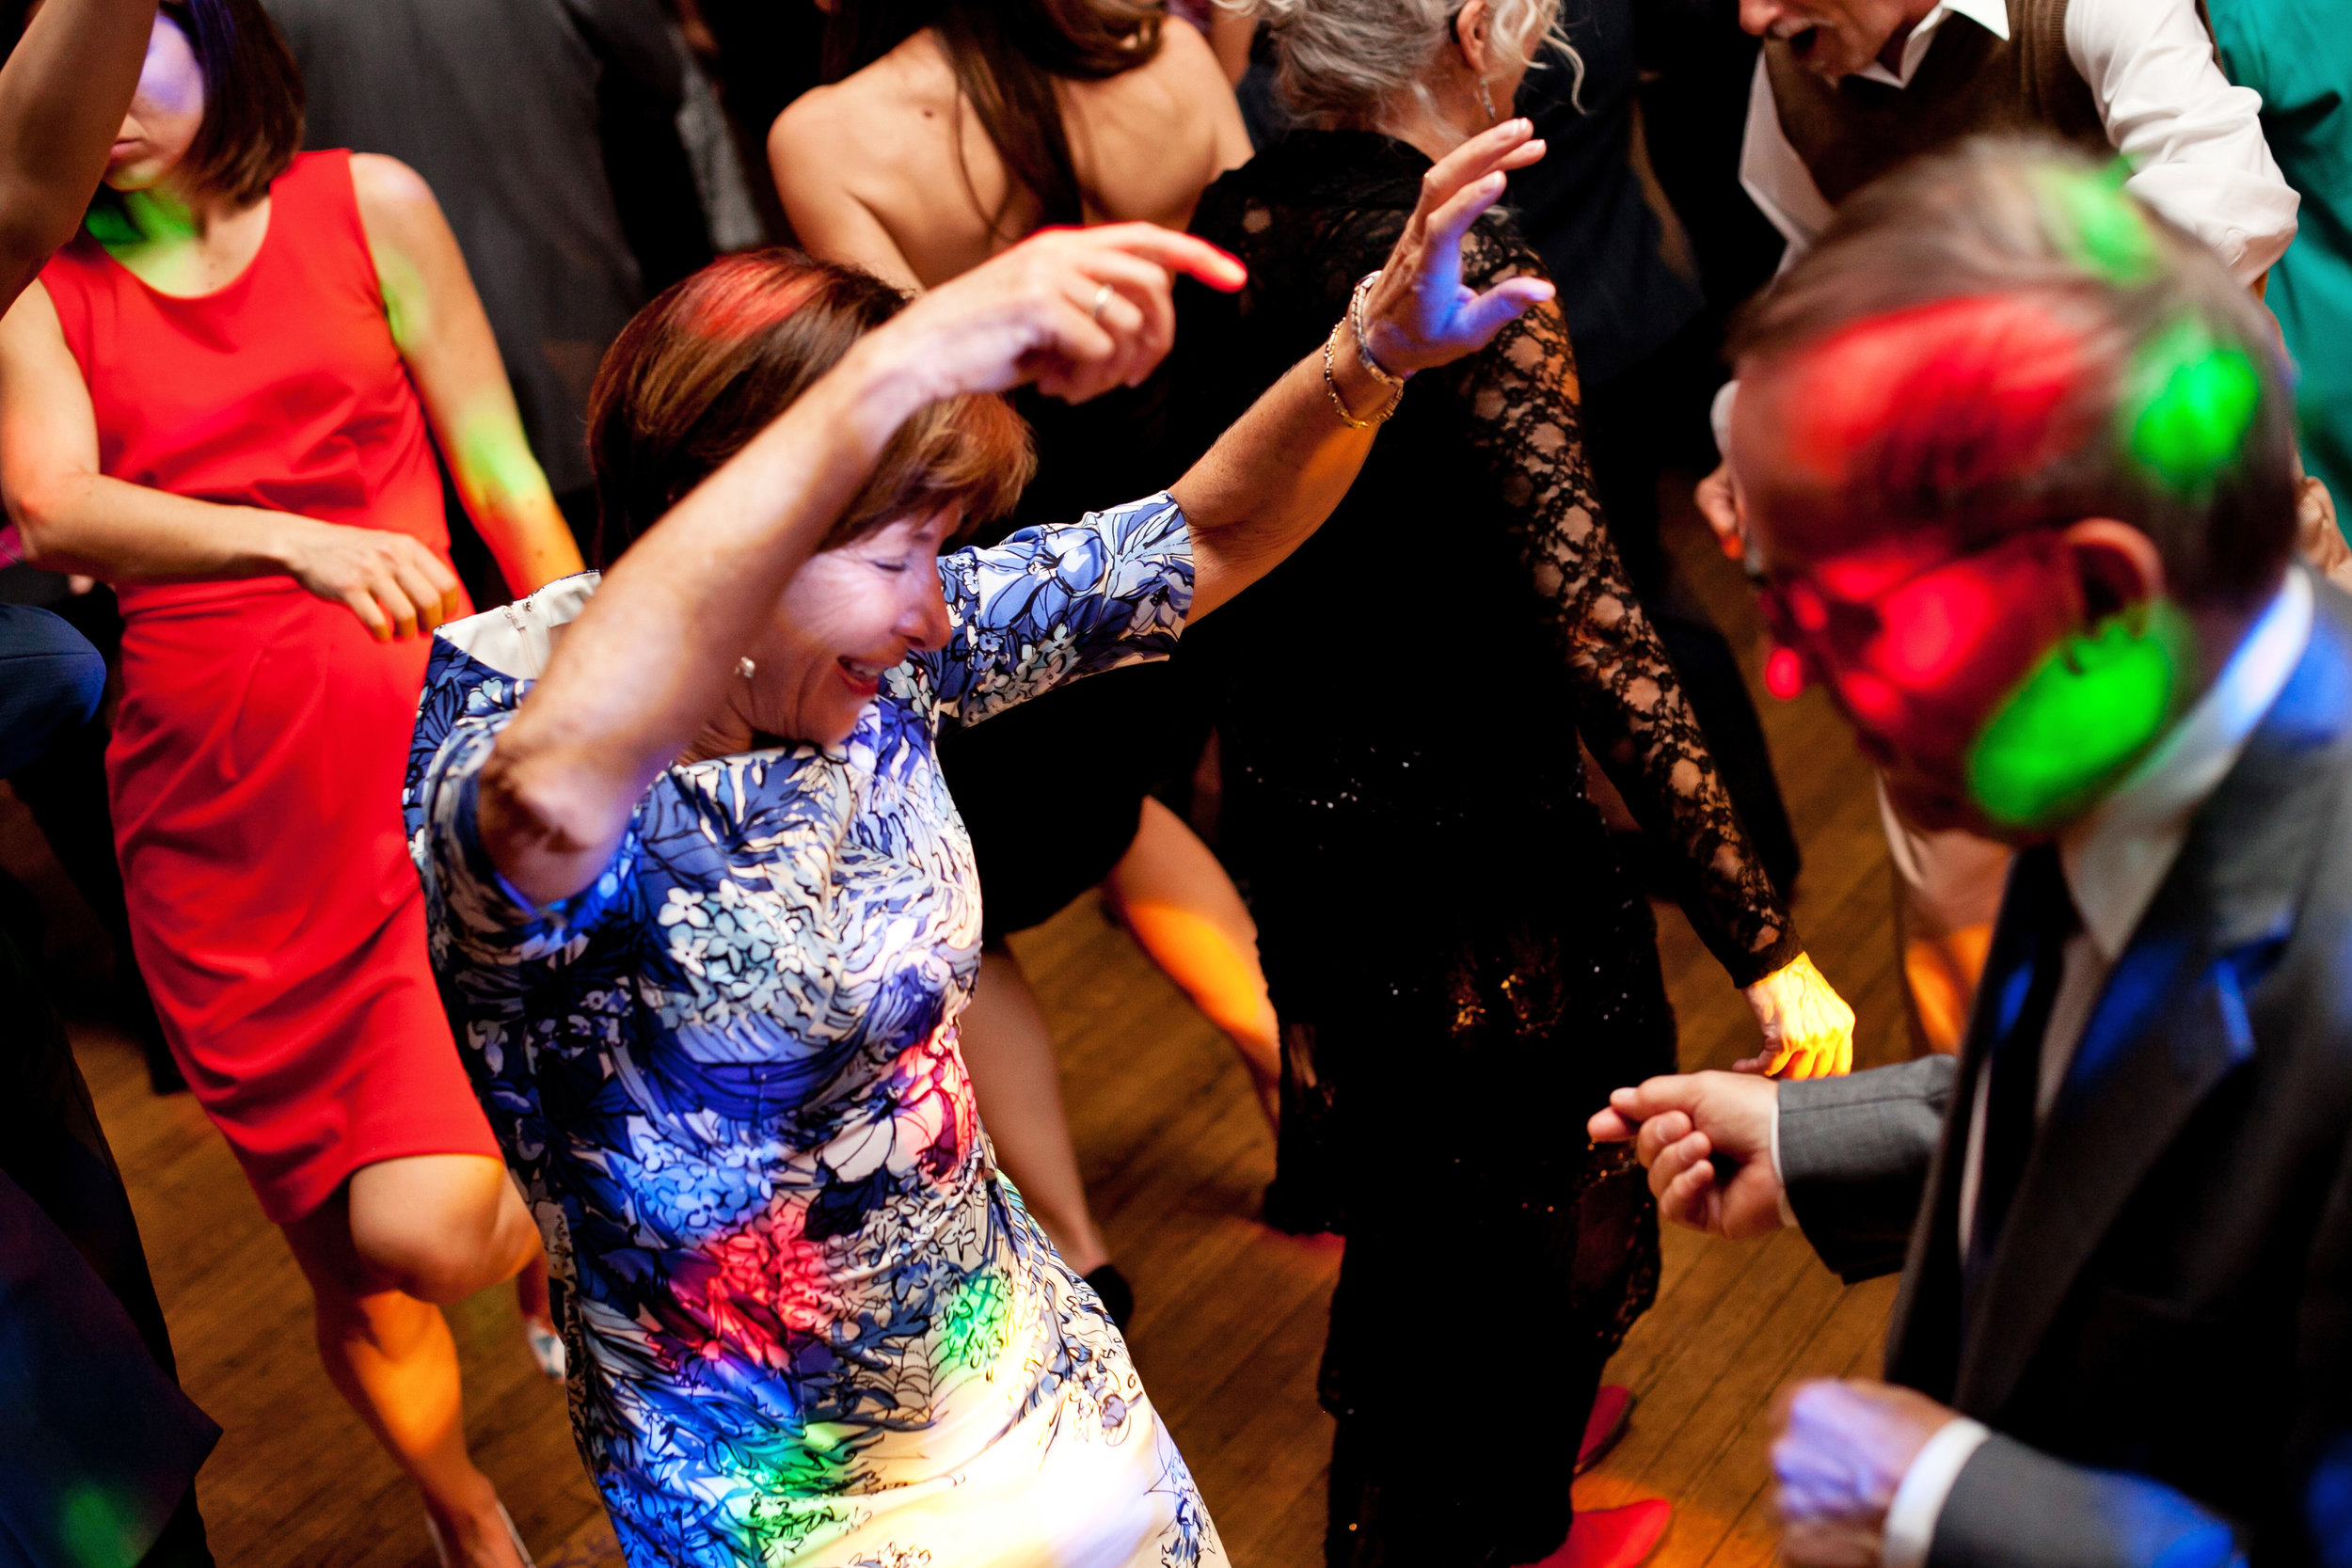 56 dance floor fun at reception guest dancing at wedding candid reception moments disco ball at reception Life Design Events.jpg